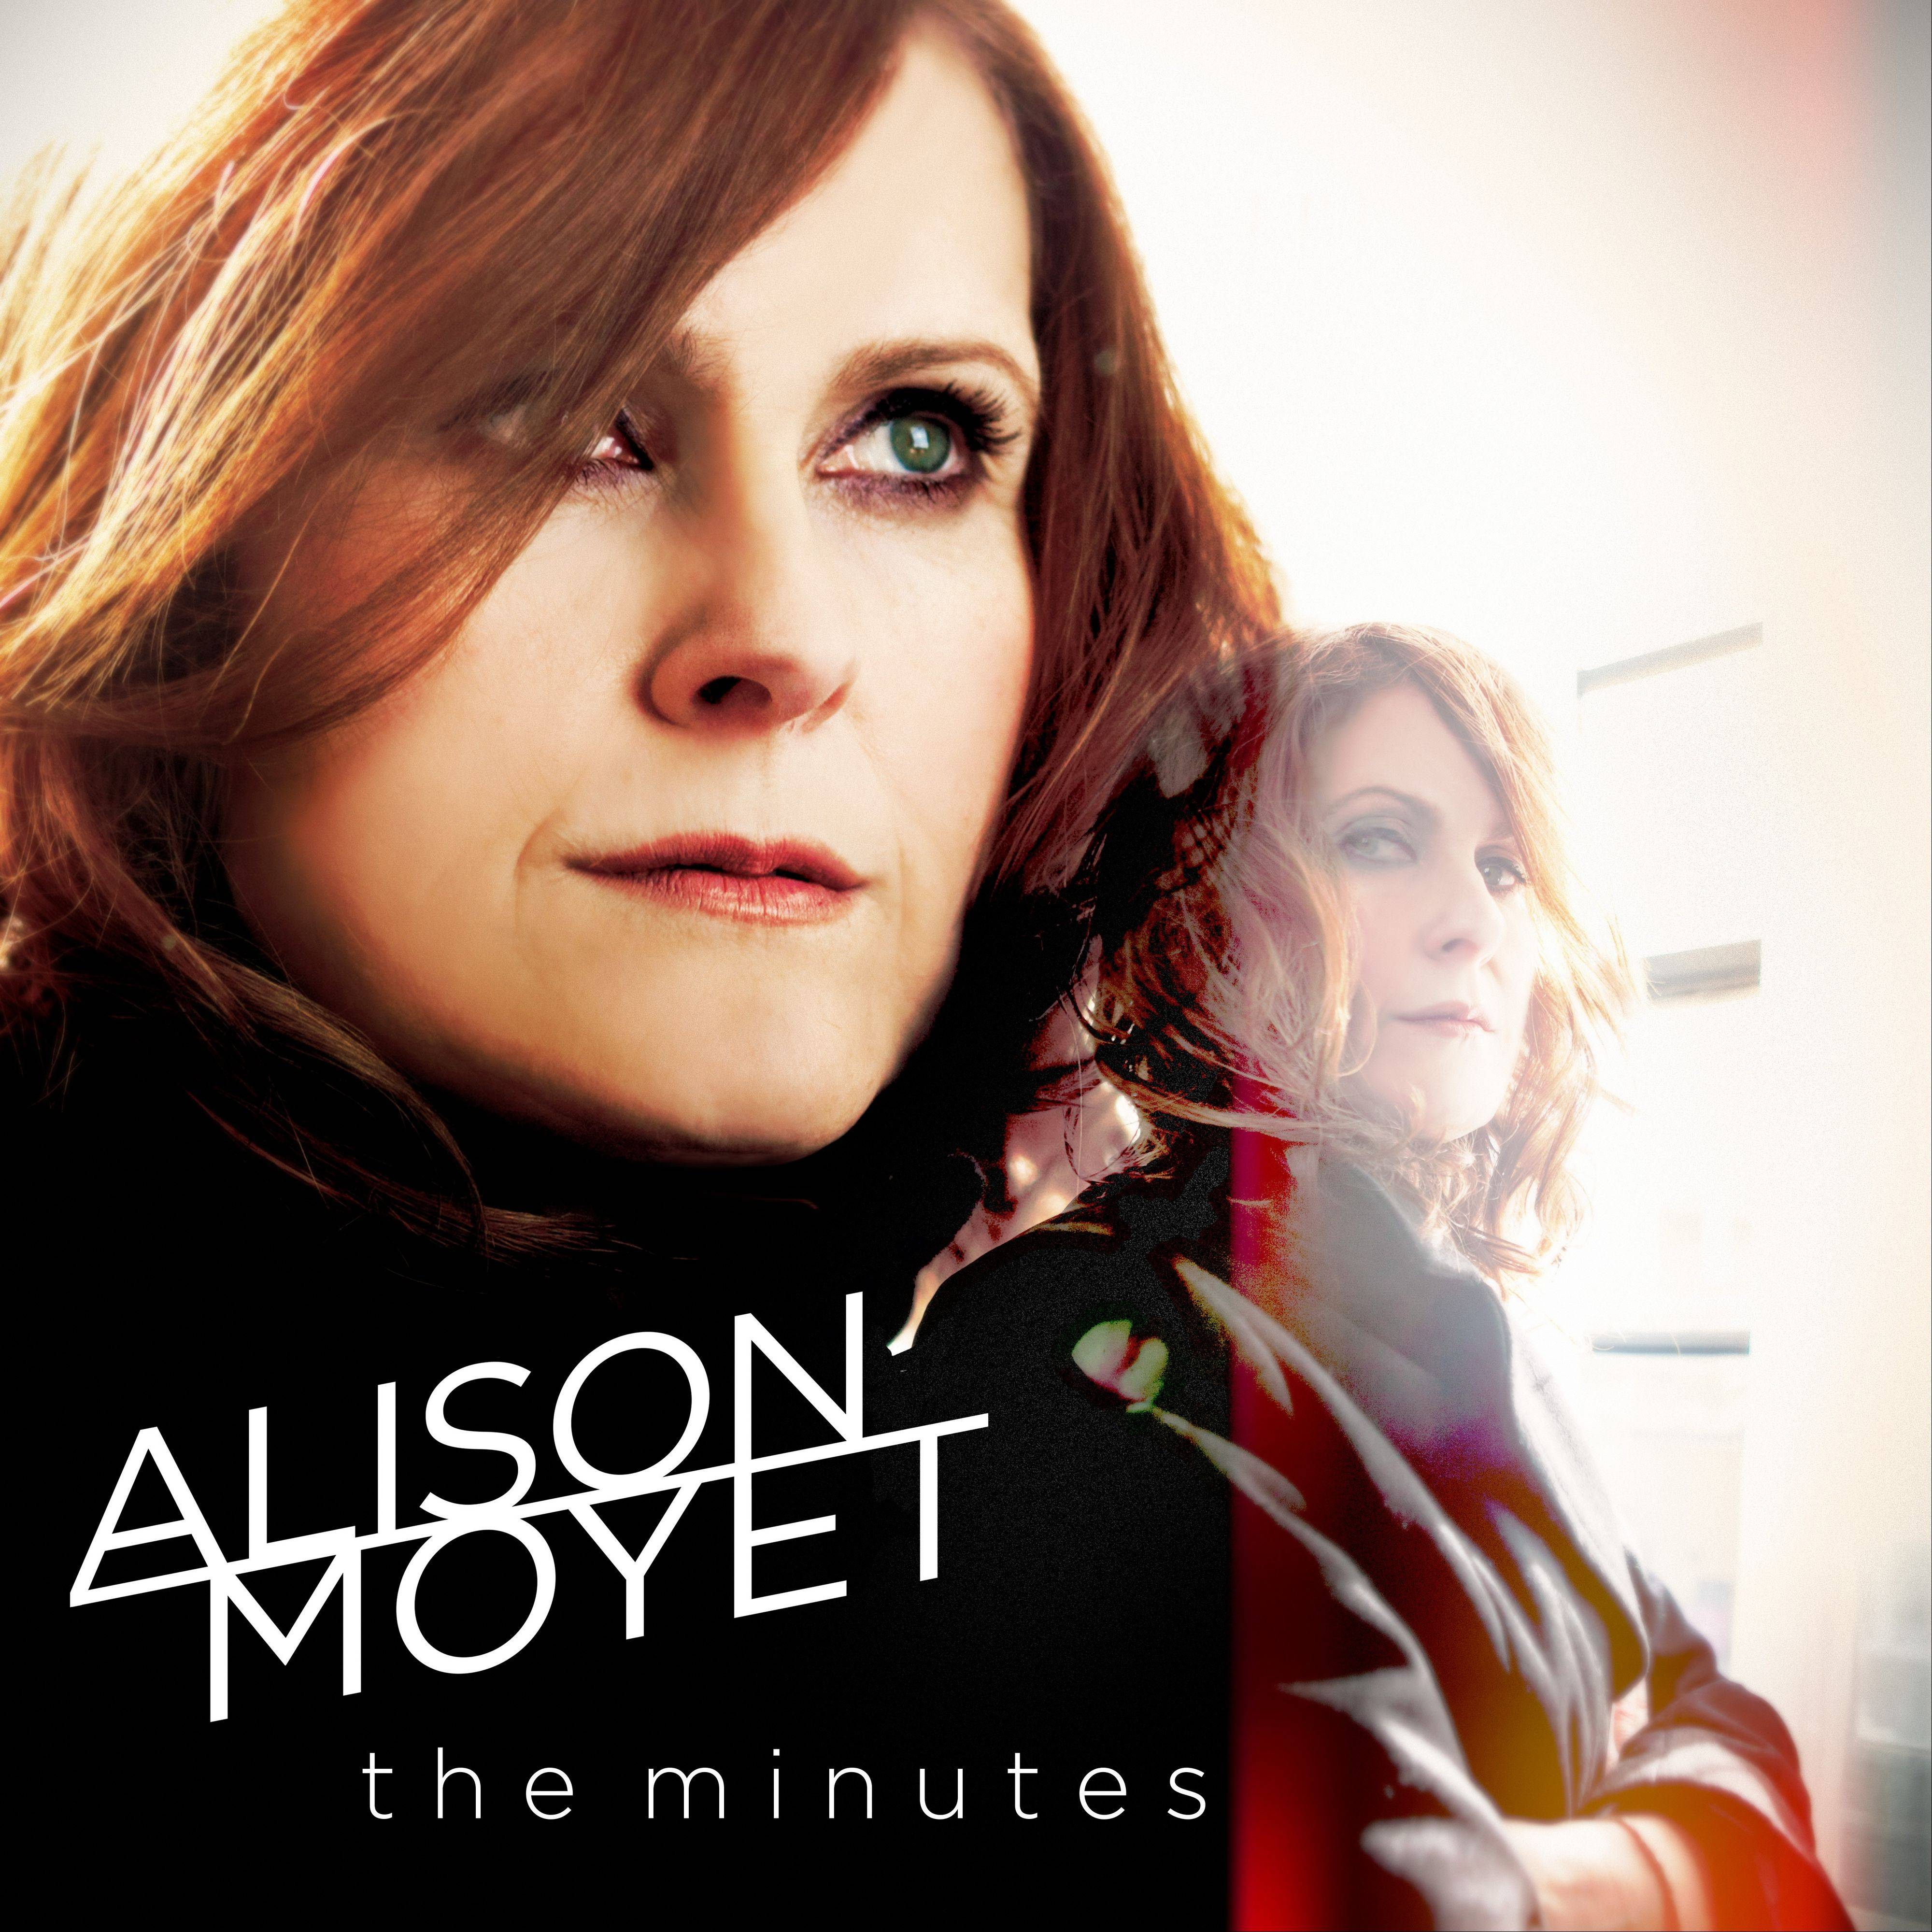 """The Minutes"" by Alison Moyet"